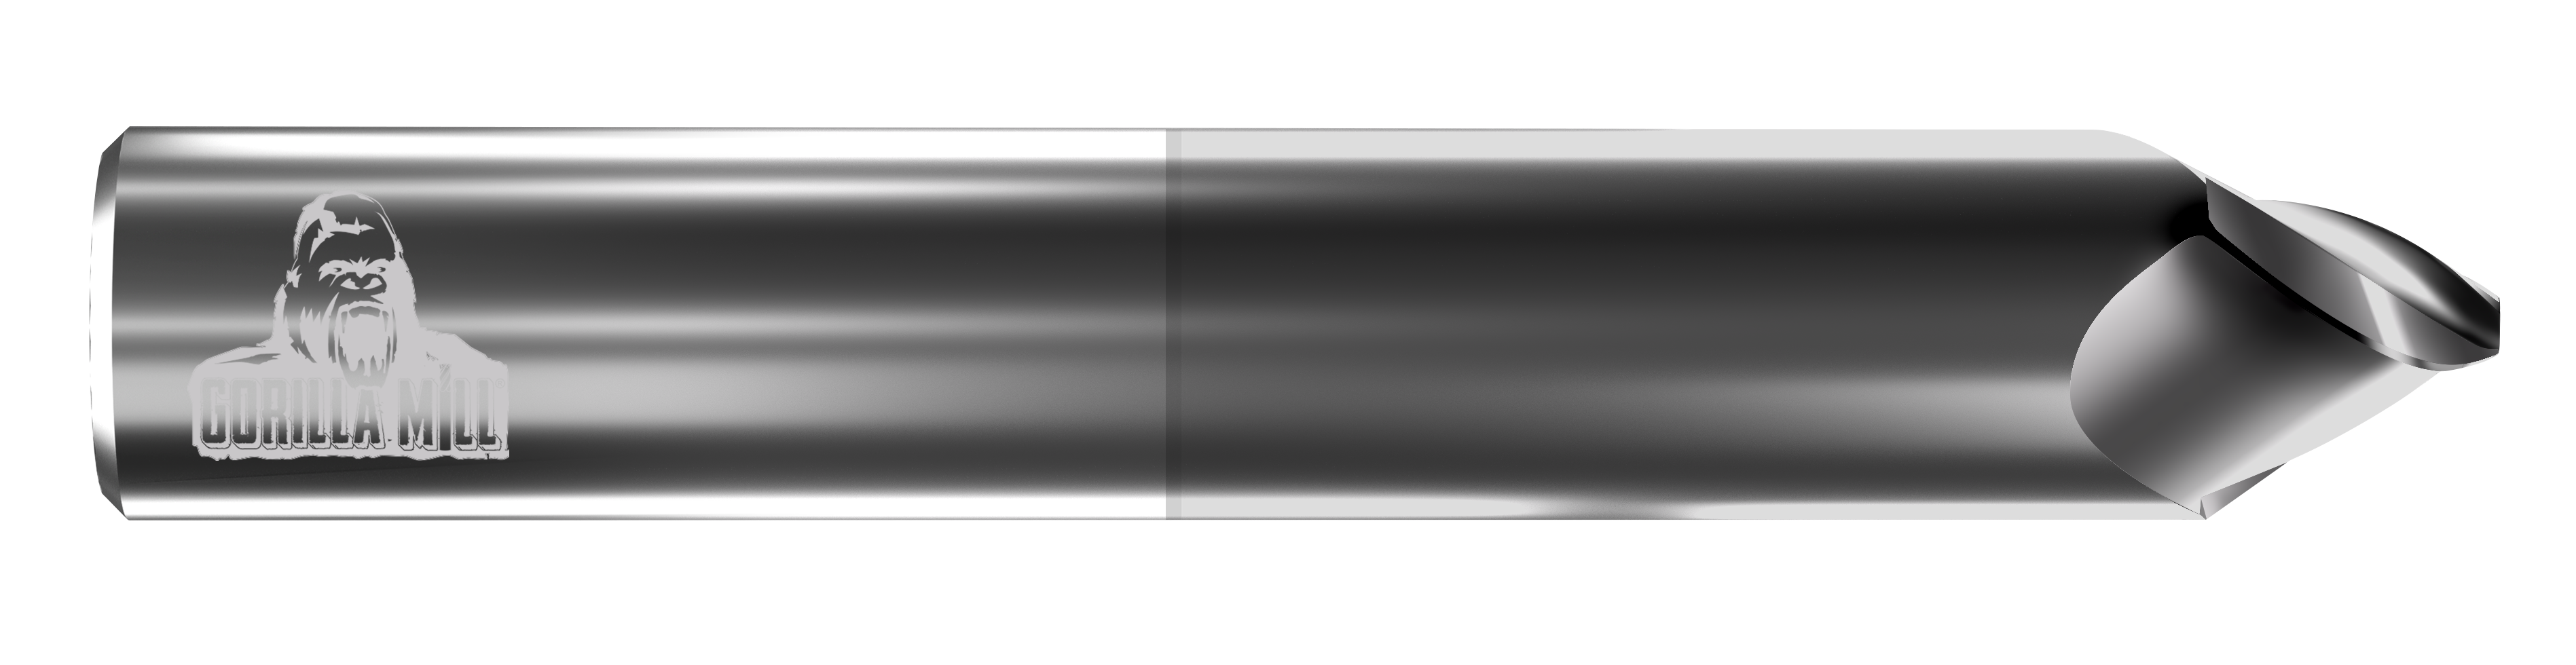 CMHPXXC3-profile-view.png